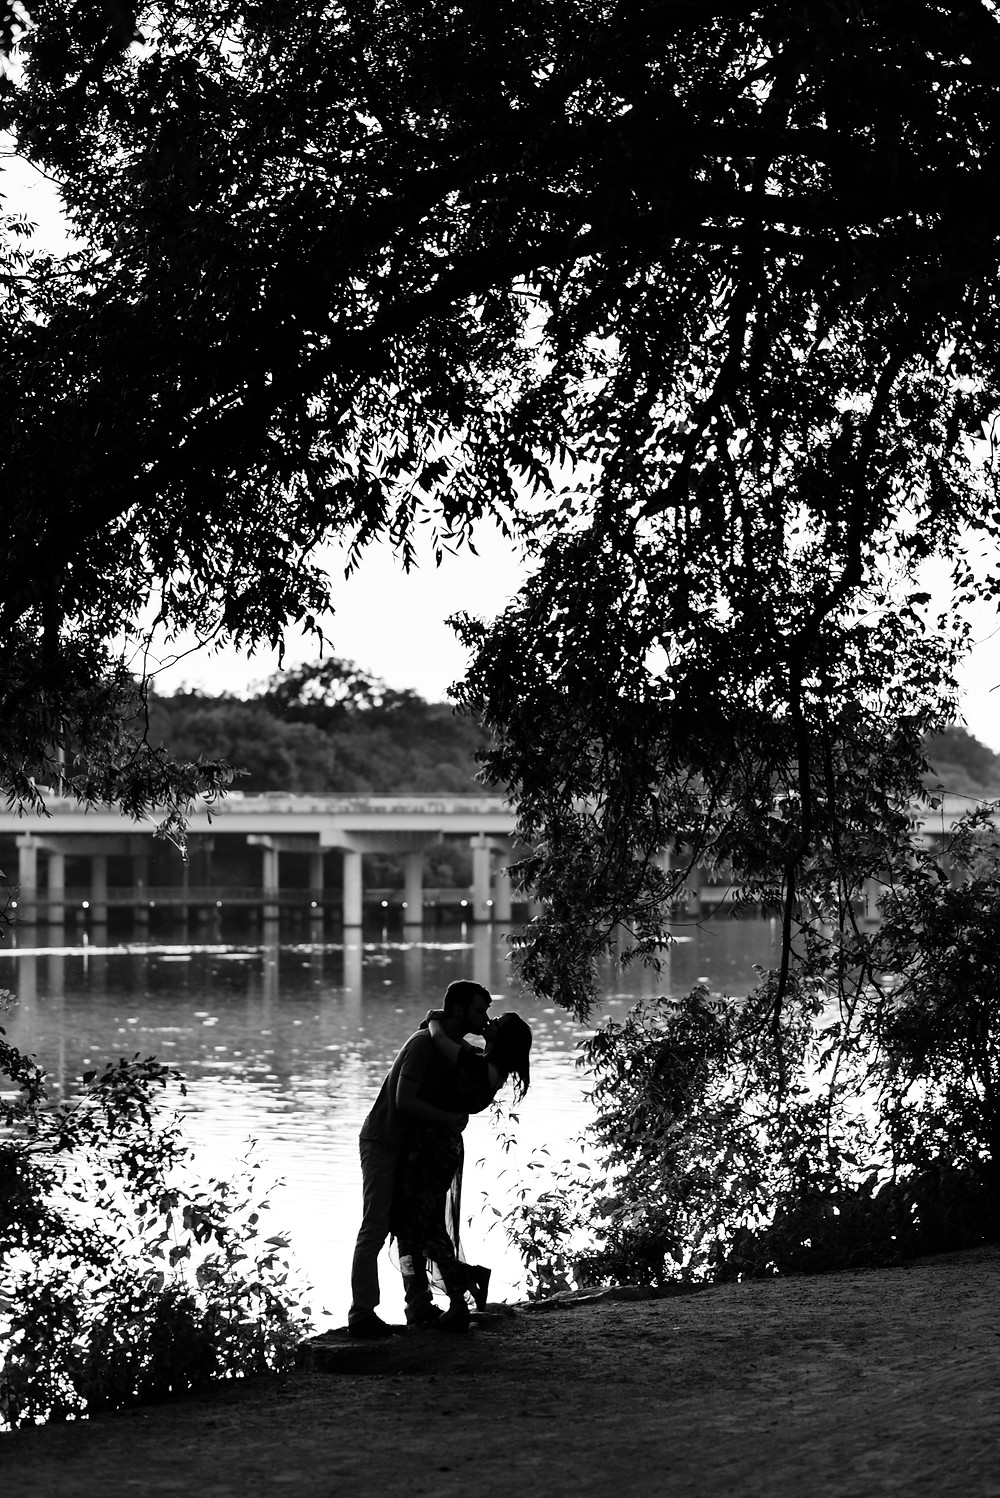 girl and guy embrace in a kiss next to lady bird lake in austin. it is a black and white silhouette photo. you can see the couple, trees, lady bird lake, and the congress street bridge.